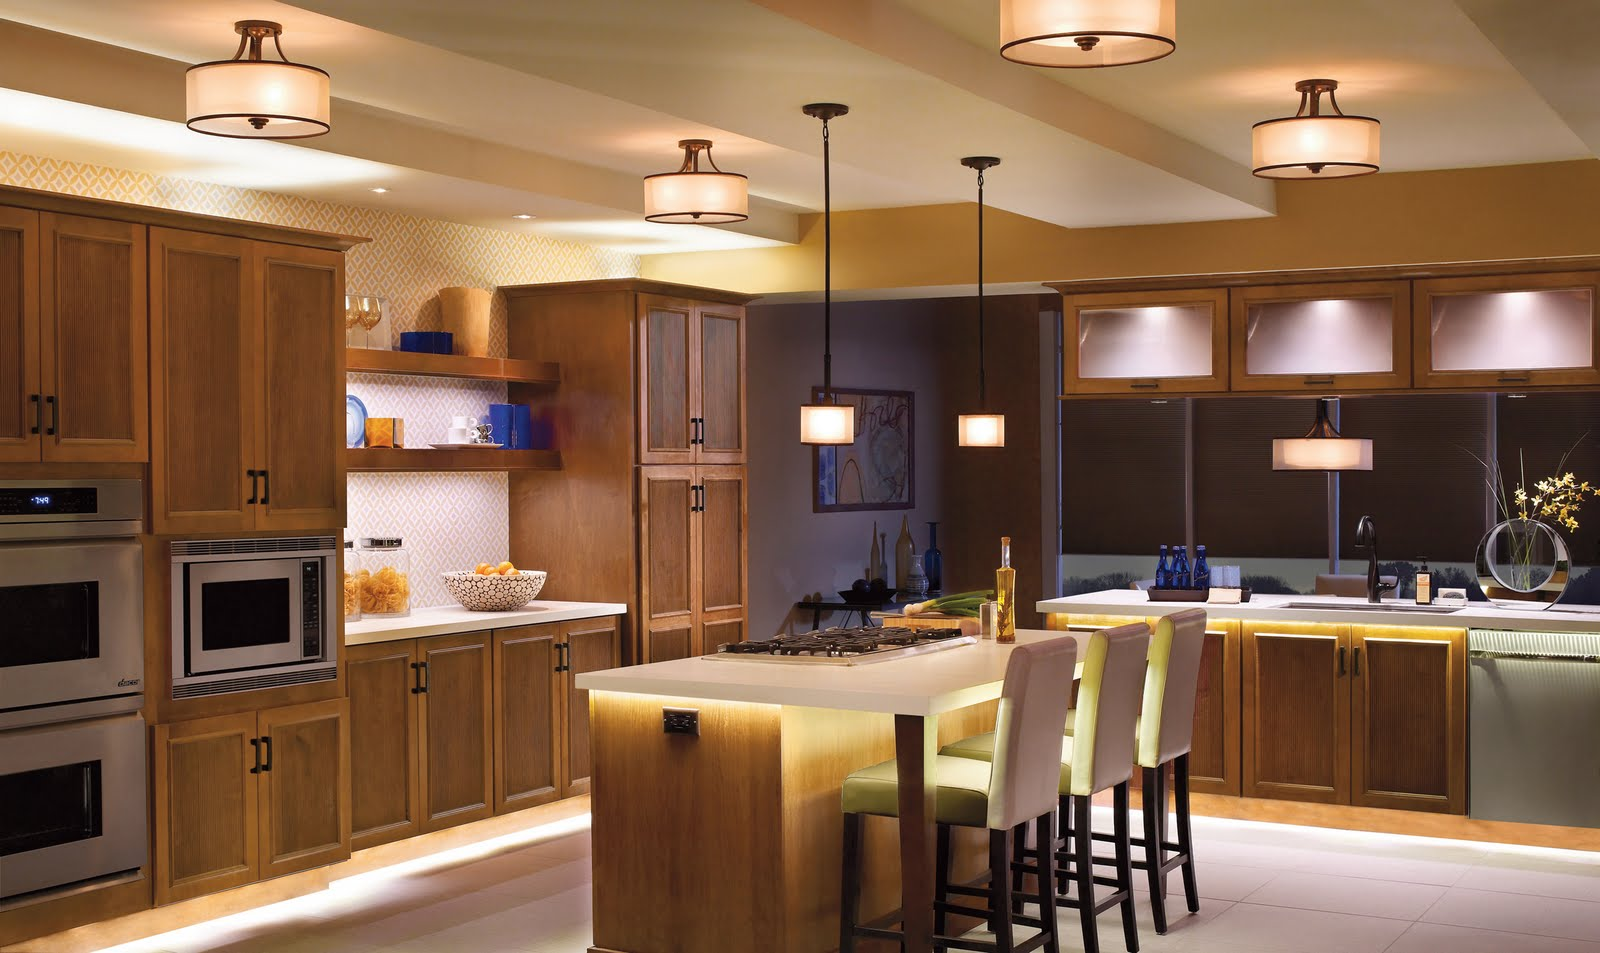 ideas for kitchen lighting design